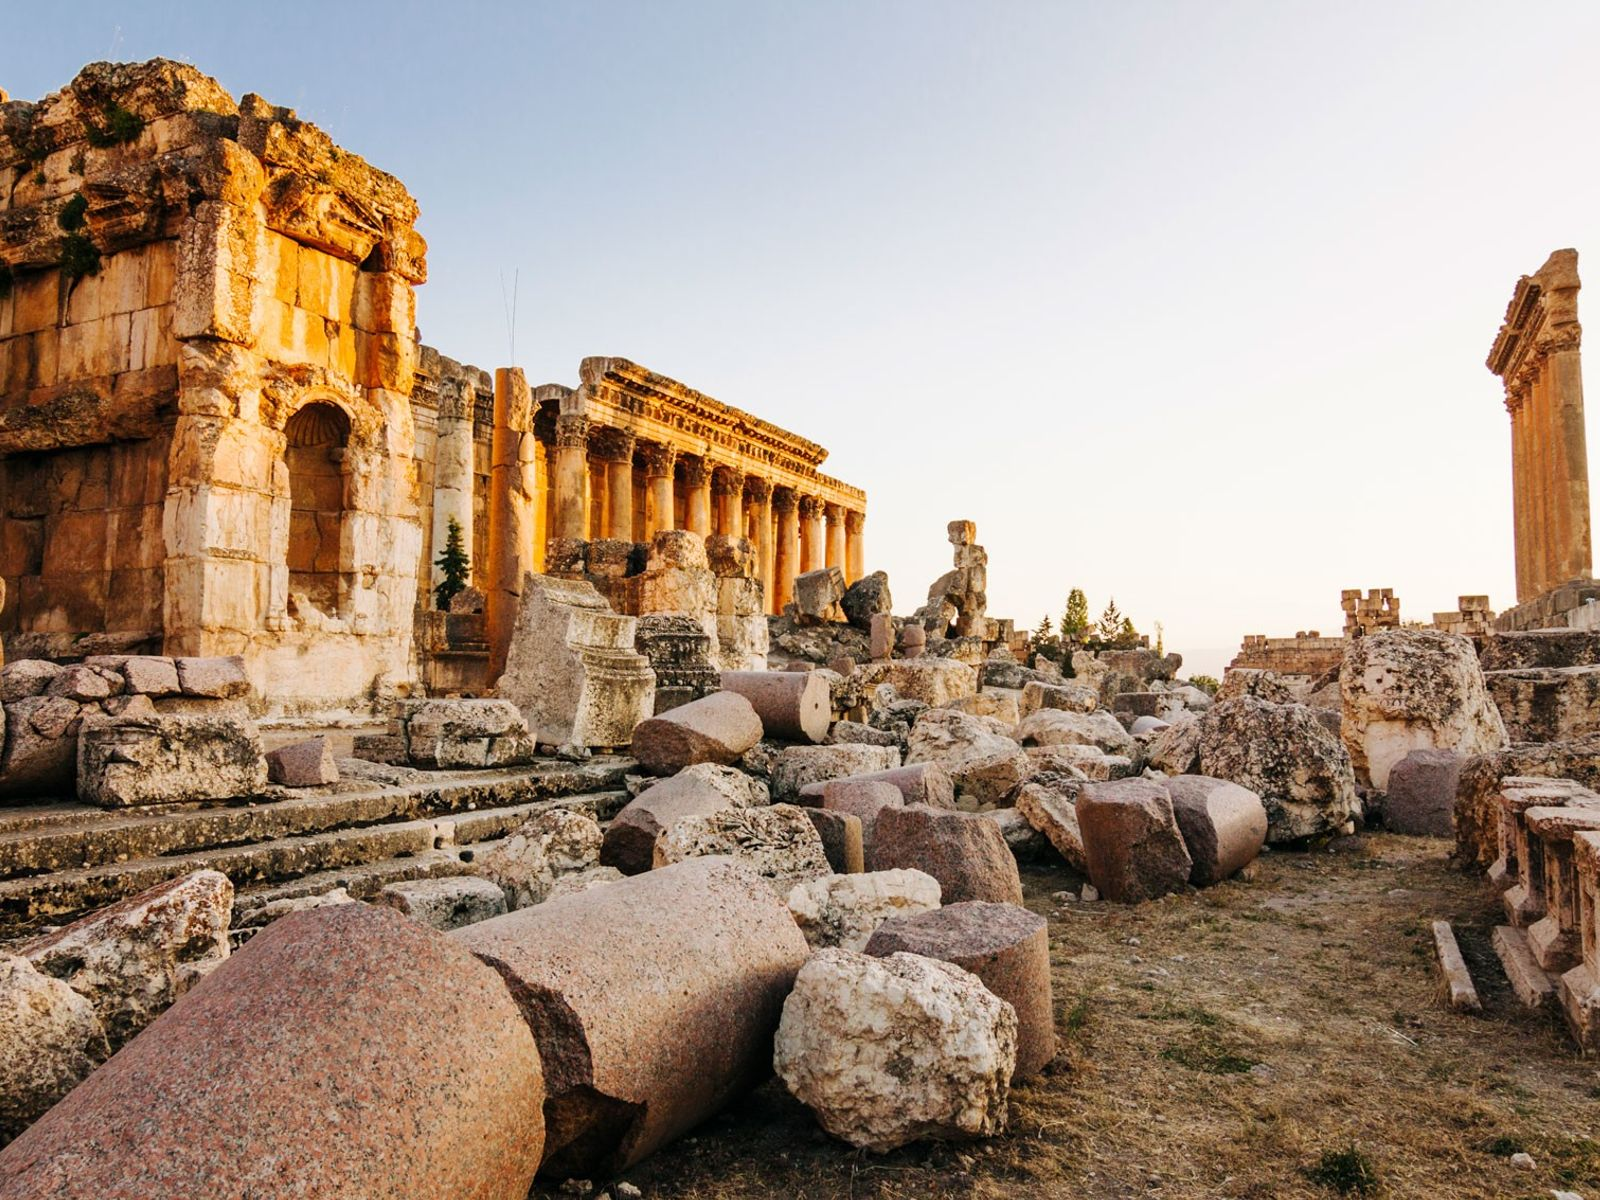 The ruined Roman temples of Jupiter and Bacchusat Baalbek, an UNESCO World Heritage Site.